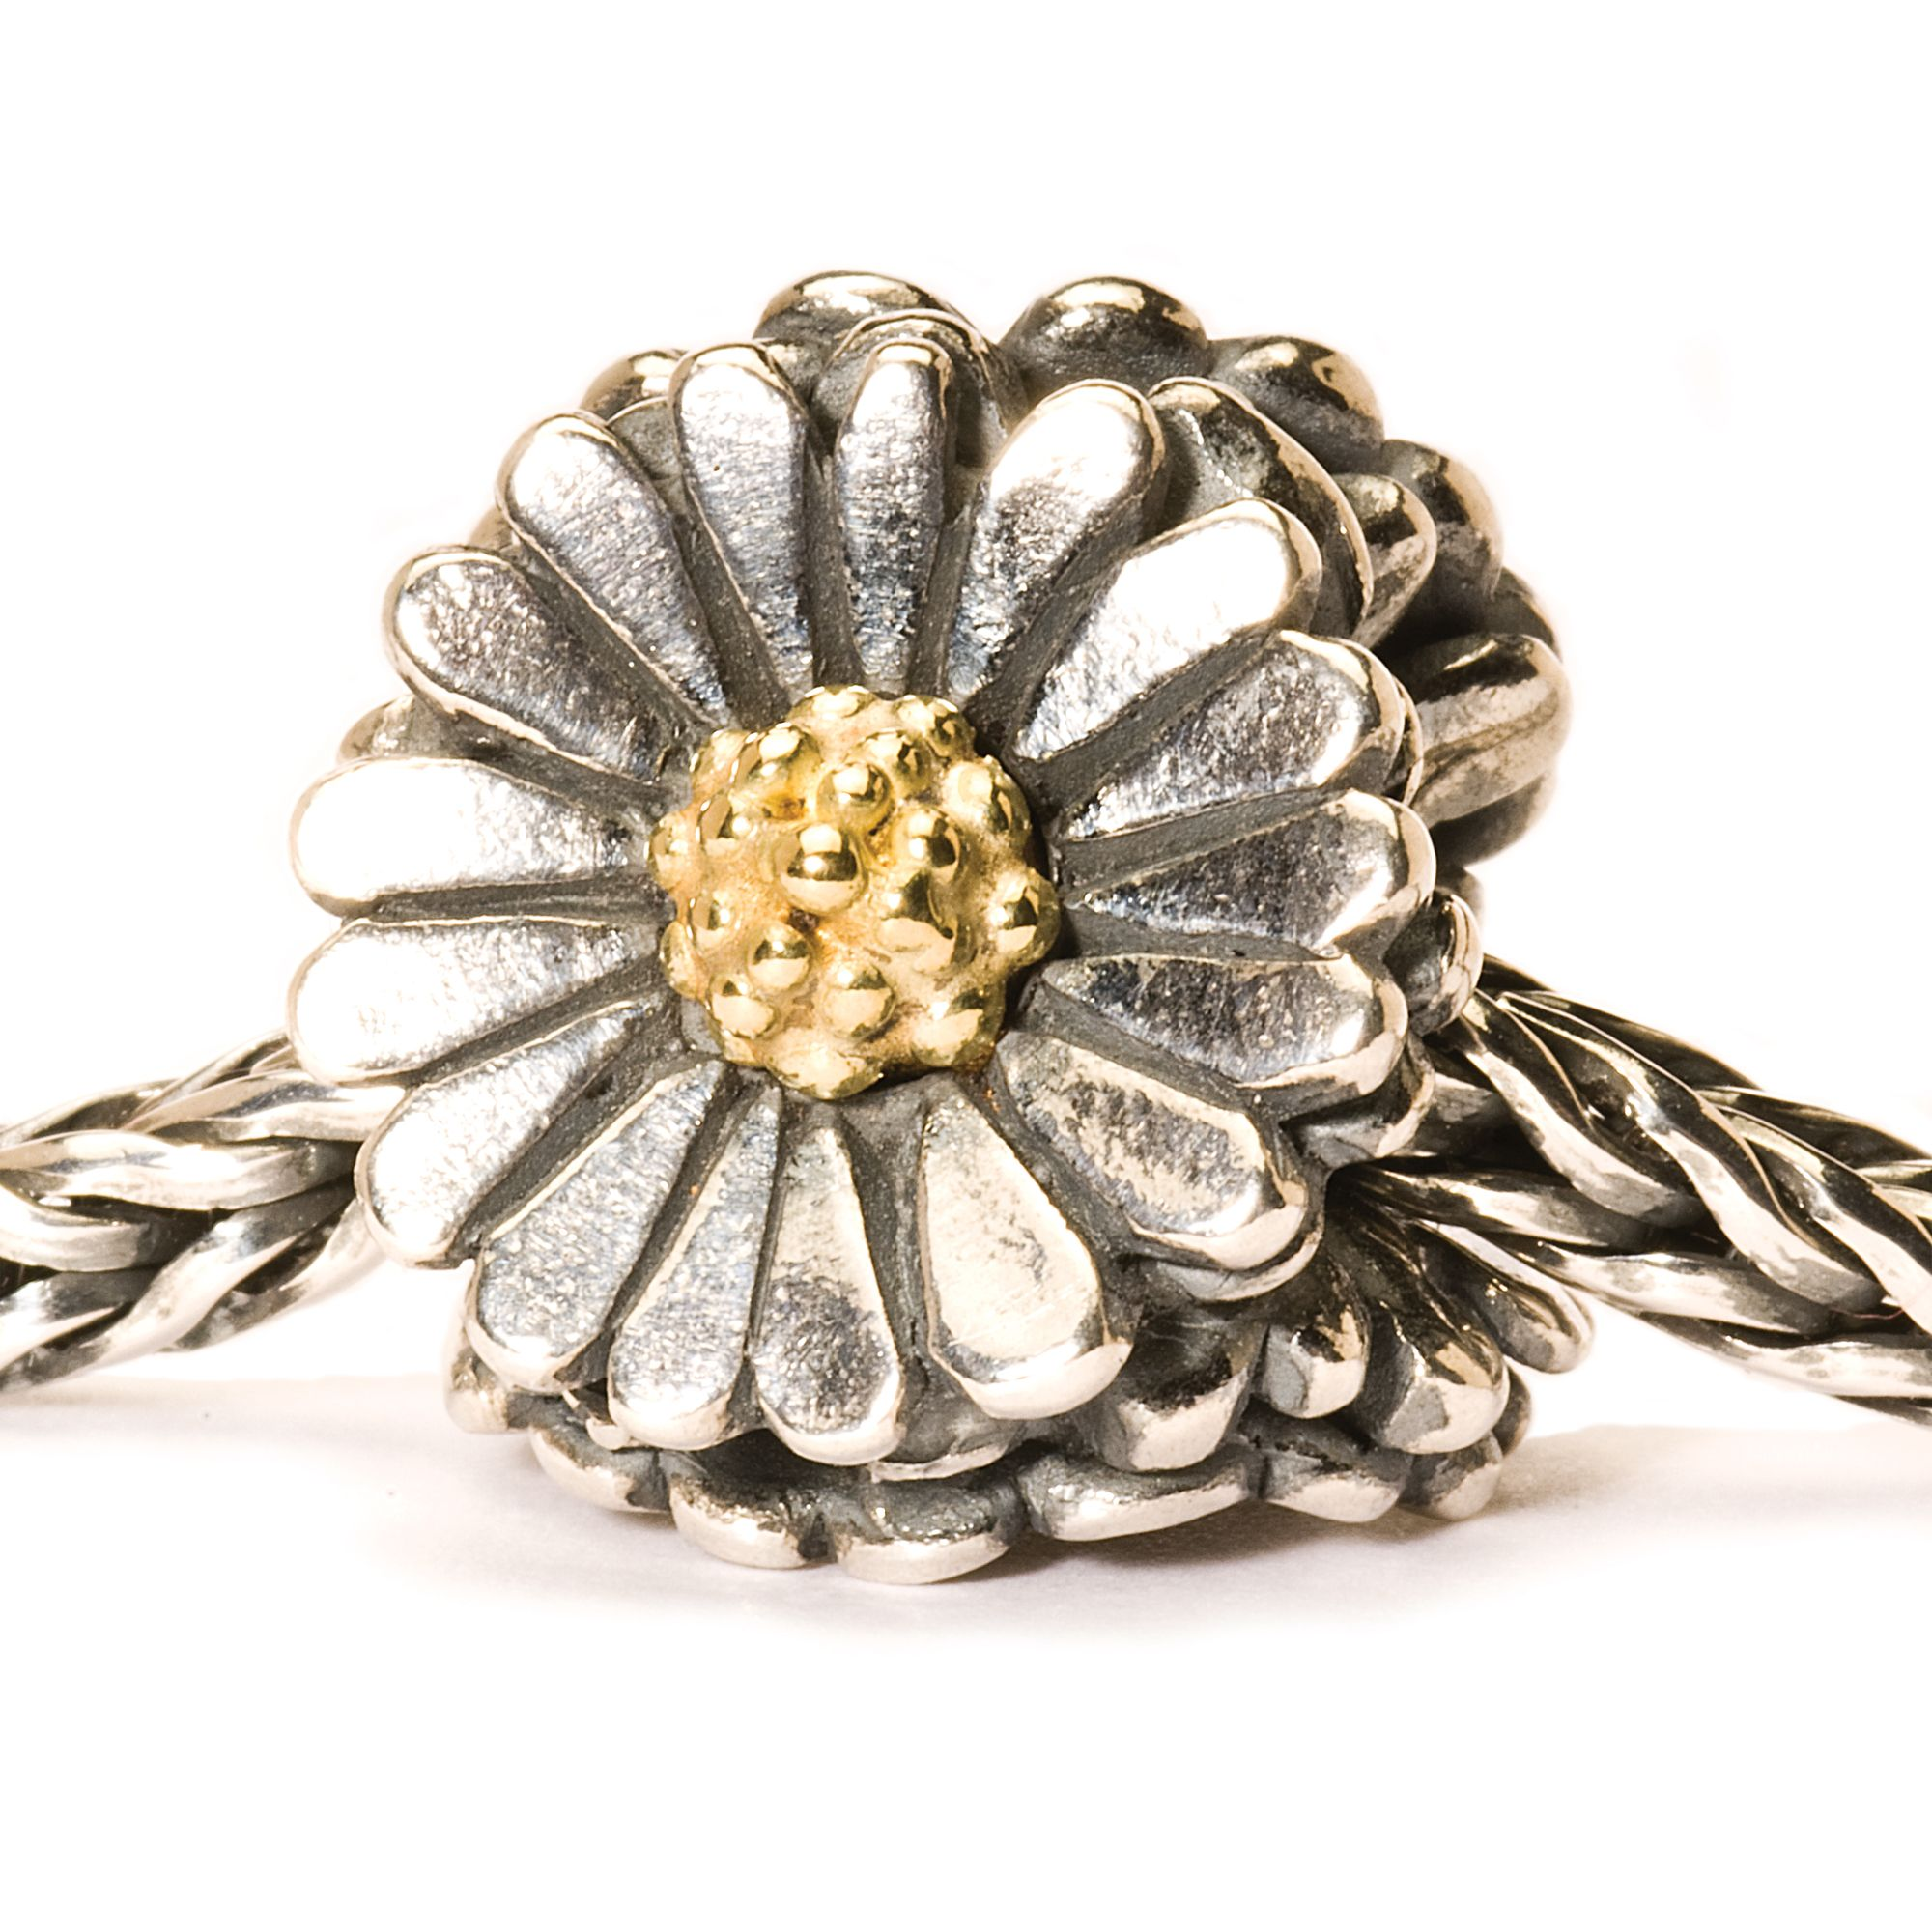 Daisy silver and gold charm bead